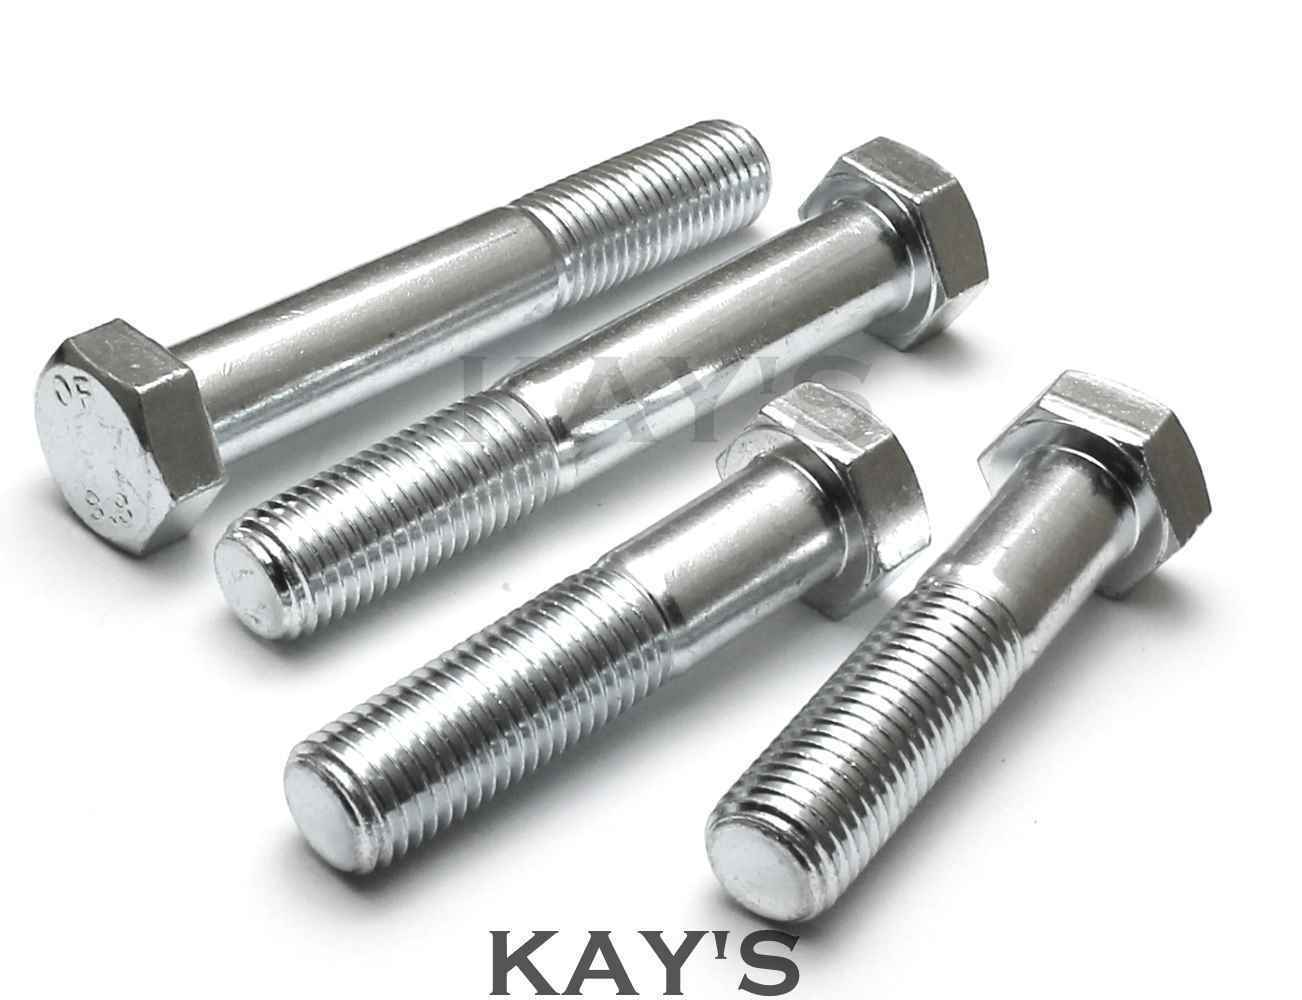 M12 (12mm) PART THREADED HEXAGON HEAD BOLTS HIGH TENSILE 8.8 ZINC PLATED SCREWS